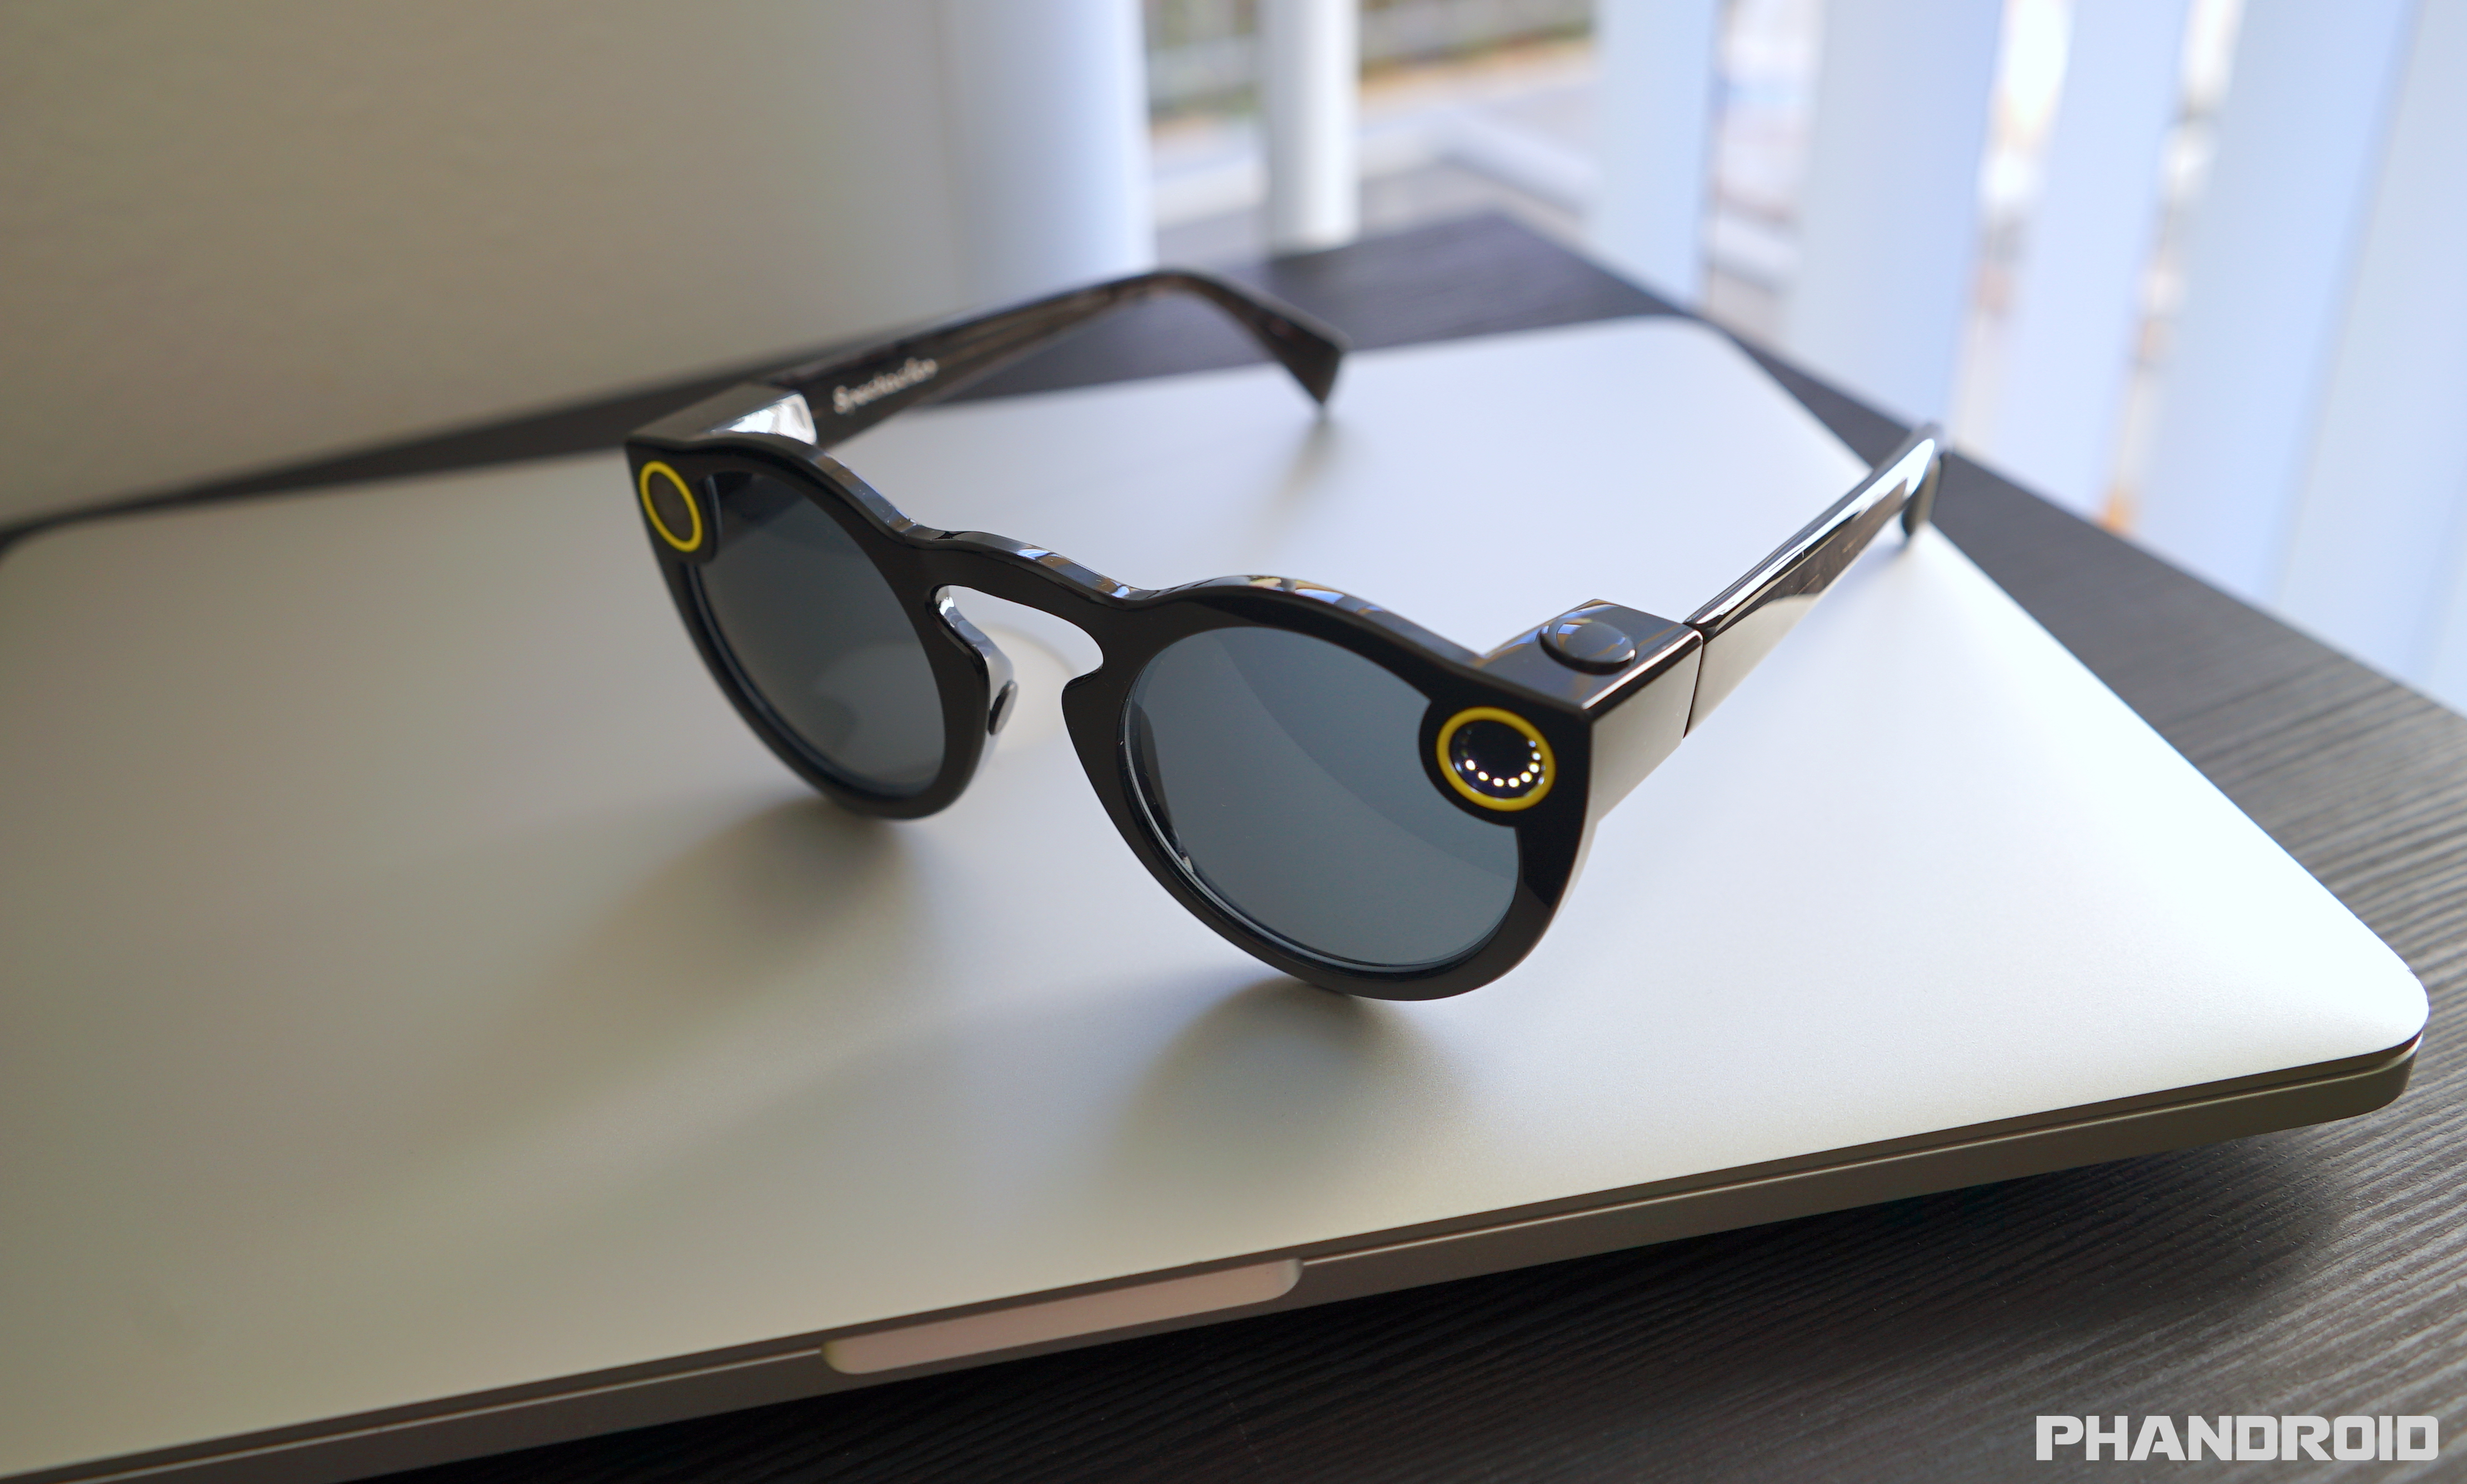 c6298507b5b A tad bit overpriced for what they offer. snapchat-spectacles-sunglasses -dsc01565